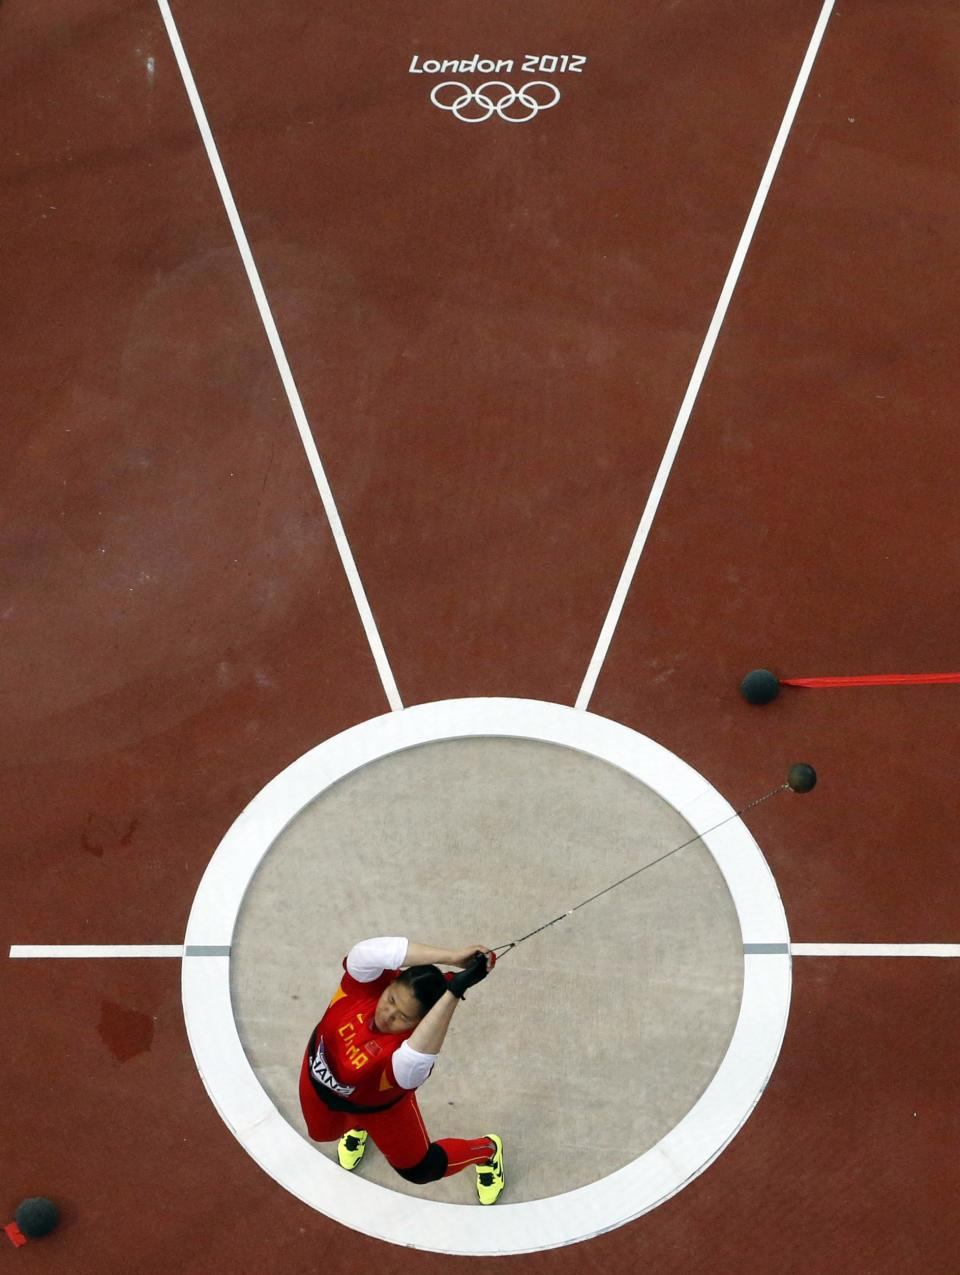 China's Zhang Wenxiu competes in the women's hammer throw final during the 2012 Summer Olympics at the Olympic Stadium, Friday, Aug. 10, 2012, in London. (AP Photo/Pawel Kopczynski, Pool)